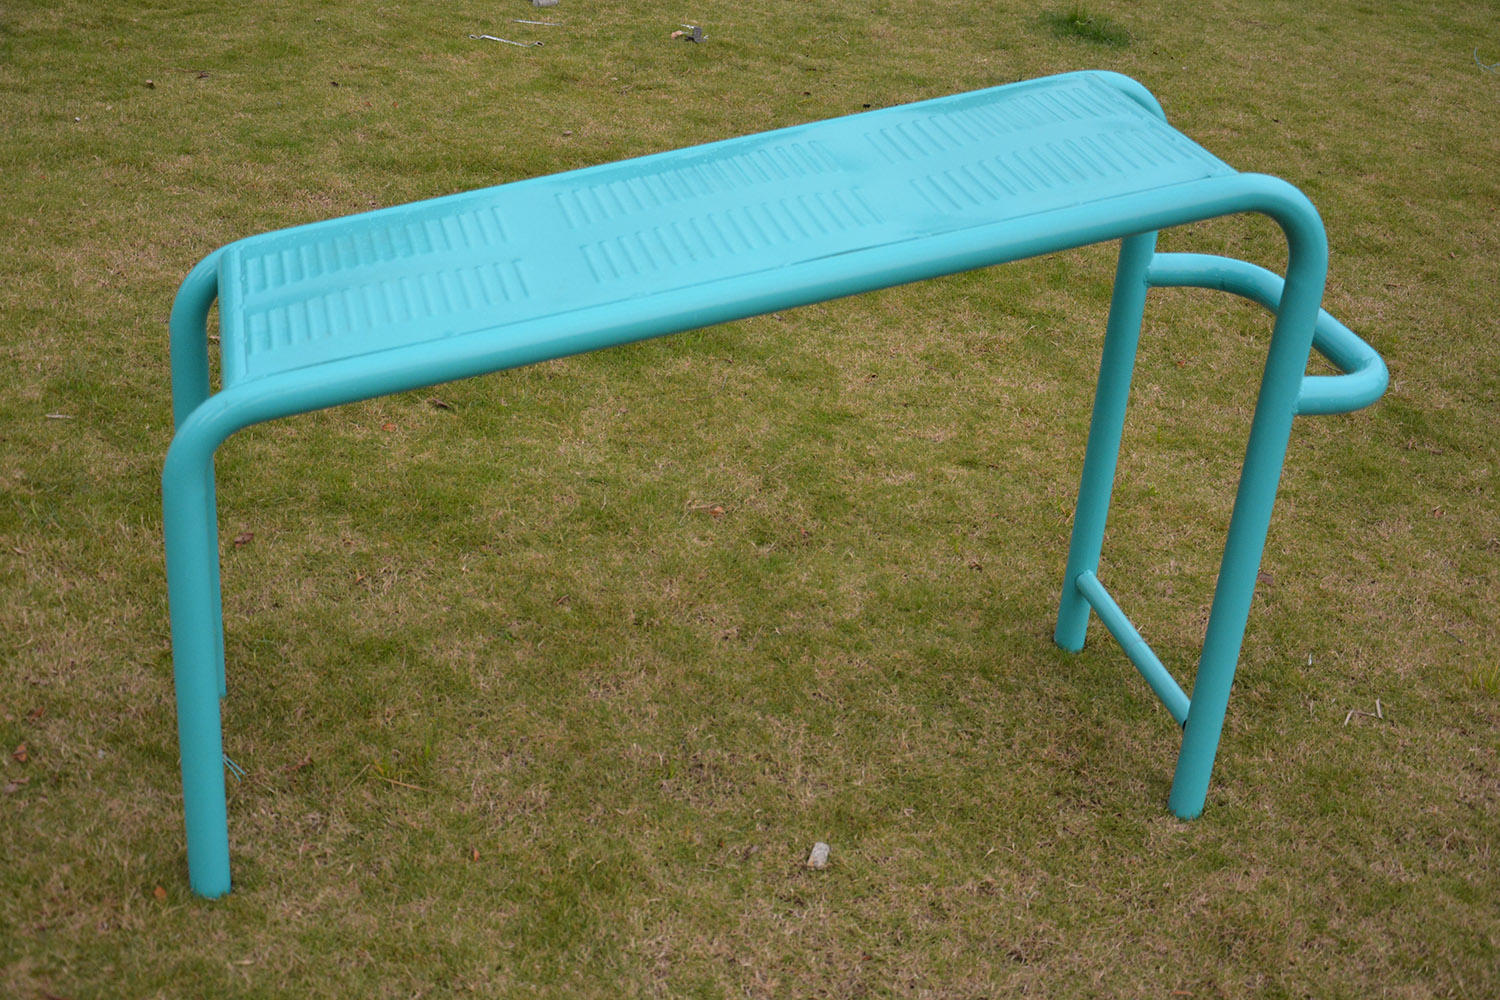 Outdoor fitness healthy path Sit-up bench GB020